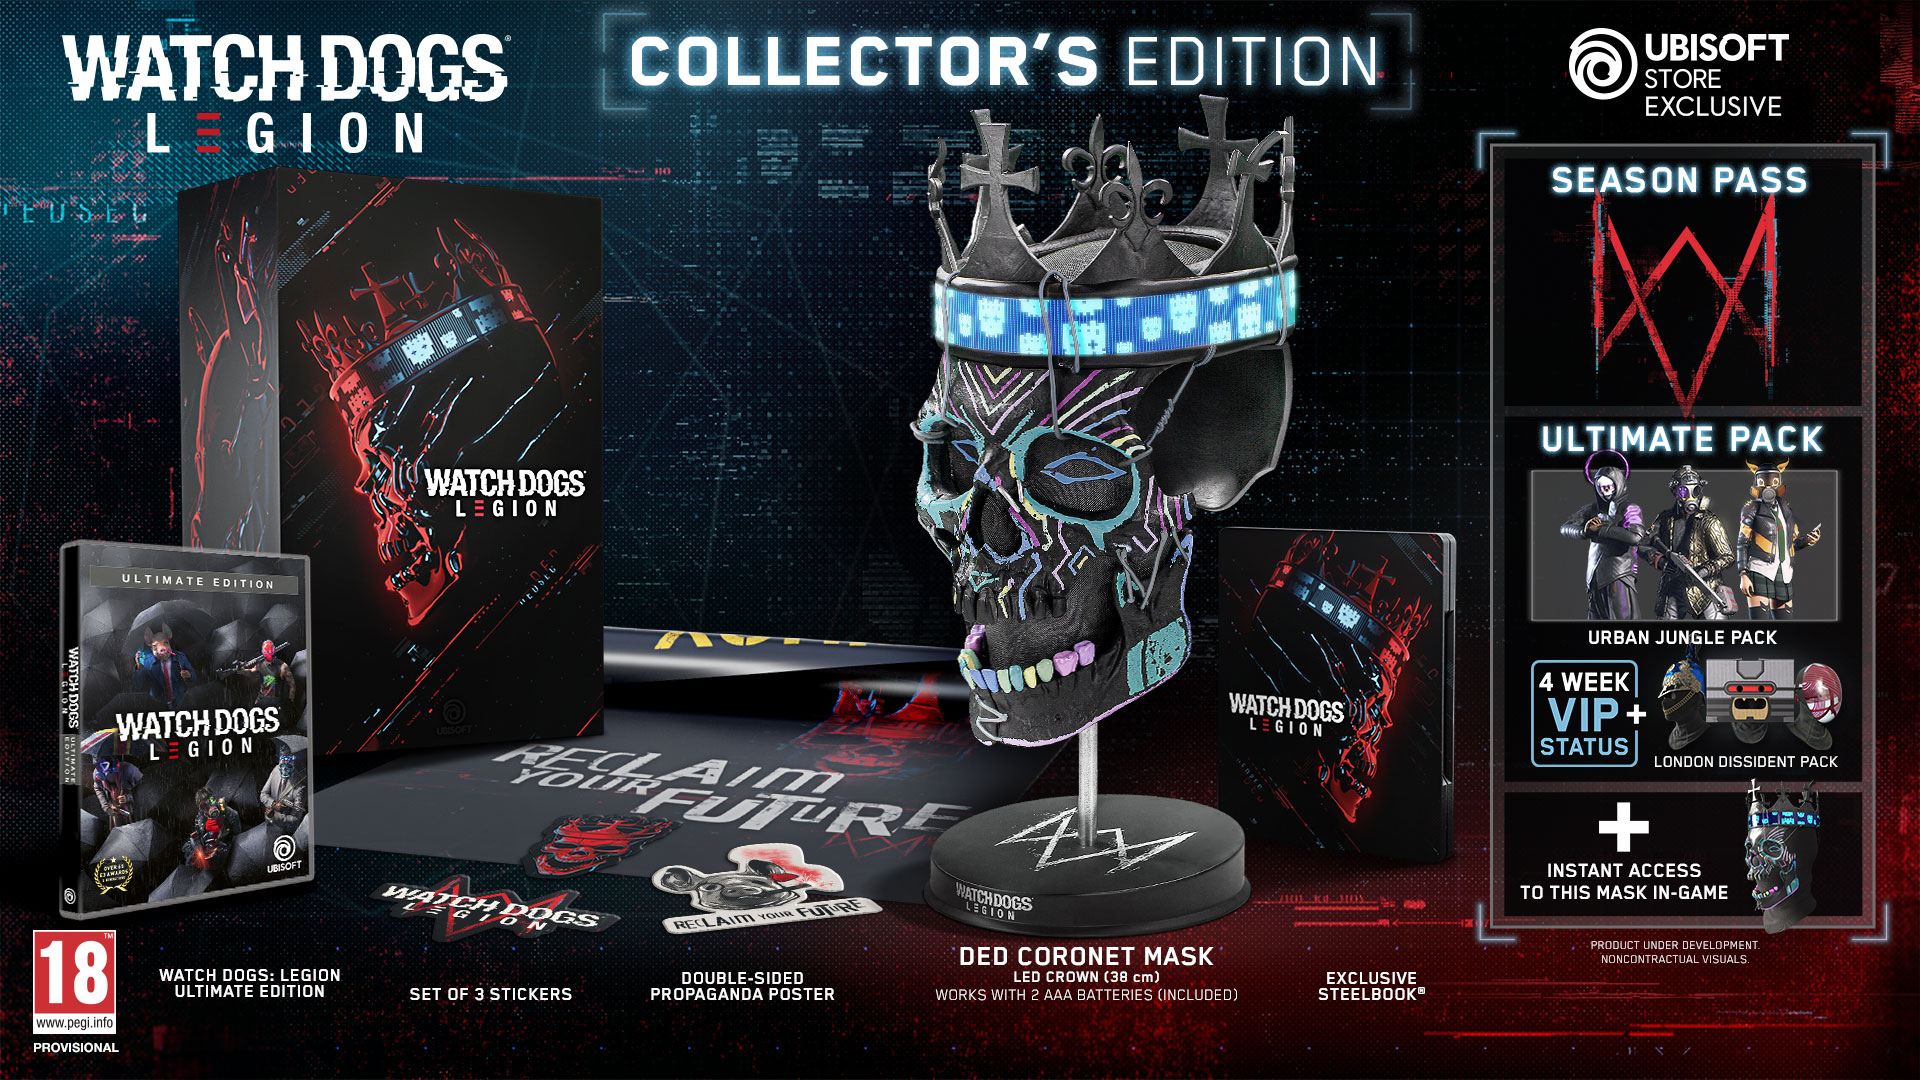 Here S A New Look At Watch Dogs Legion And Collector S Edition Detailed Ubisoftforward Pushstartplay